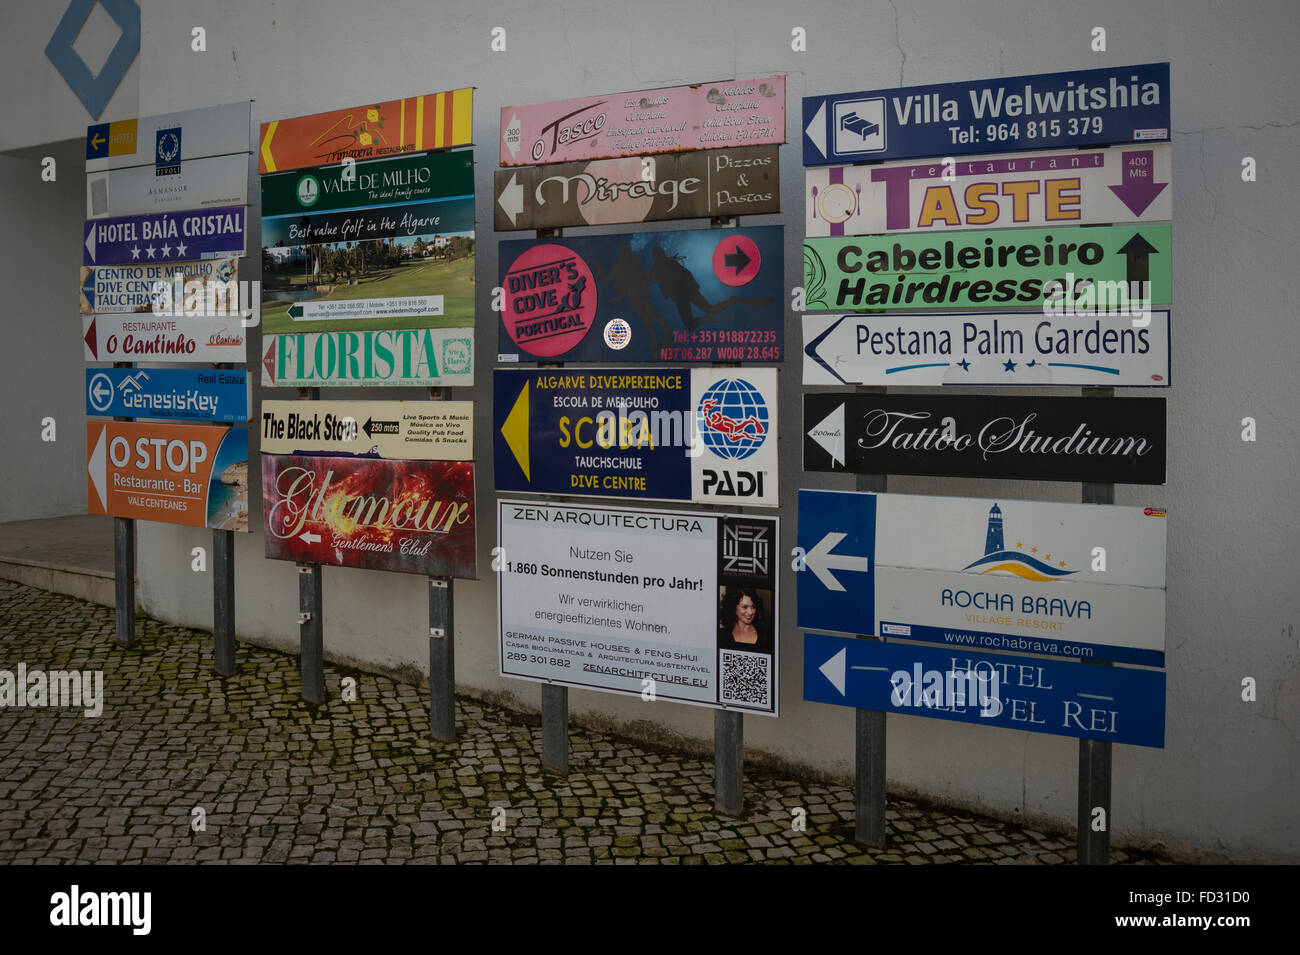 Tourist signs and directions in the Algarve holiday resort town of Carvoeiro - Stock Image